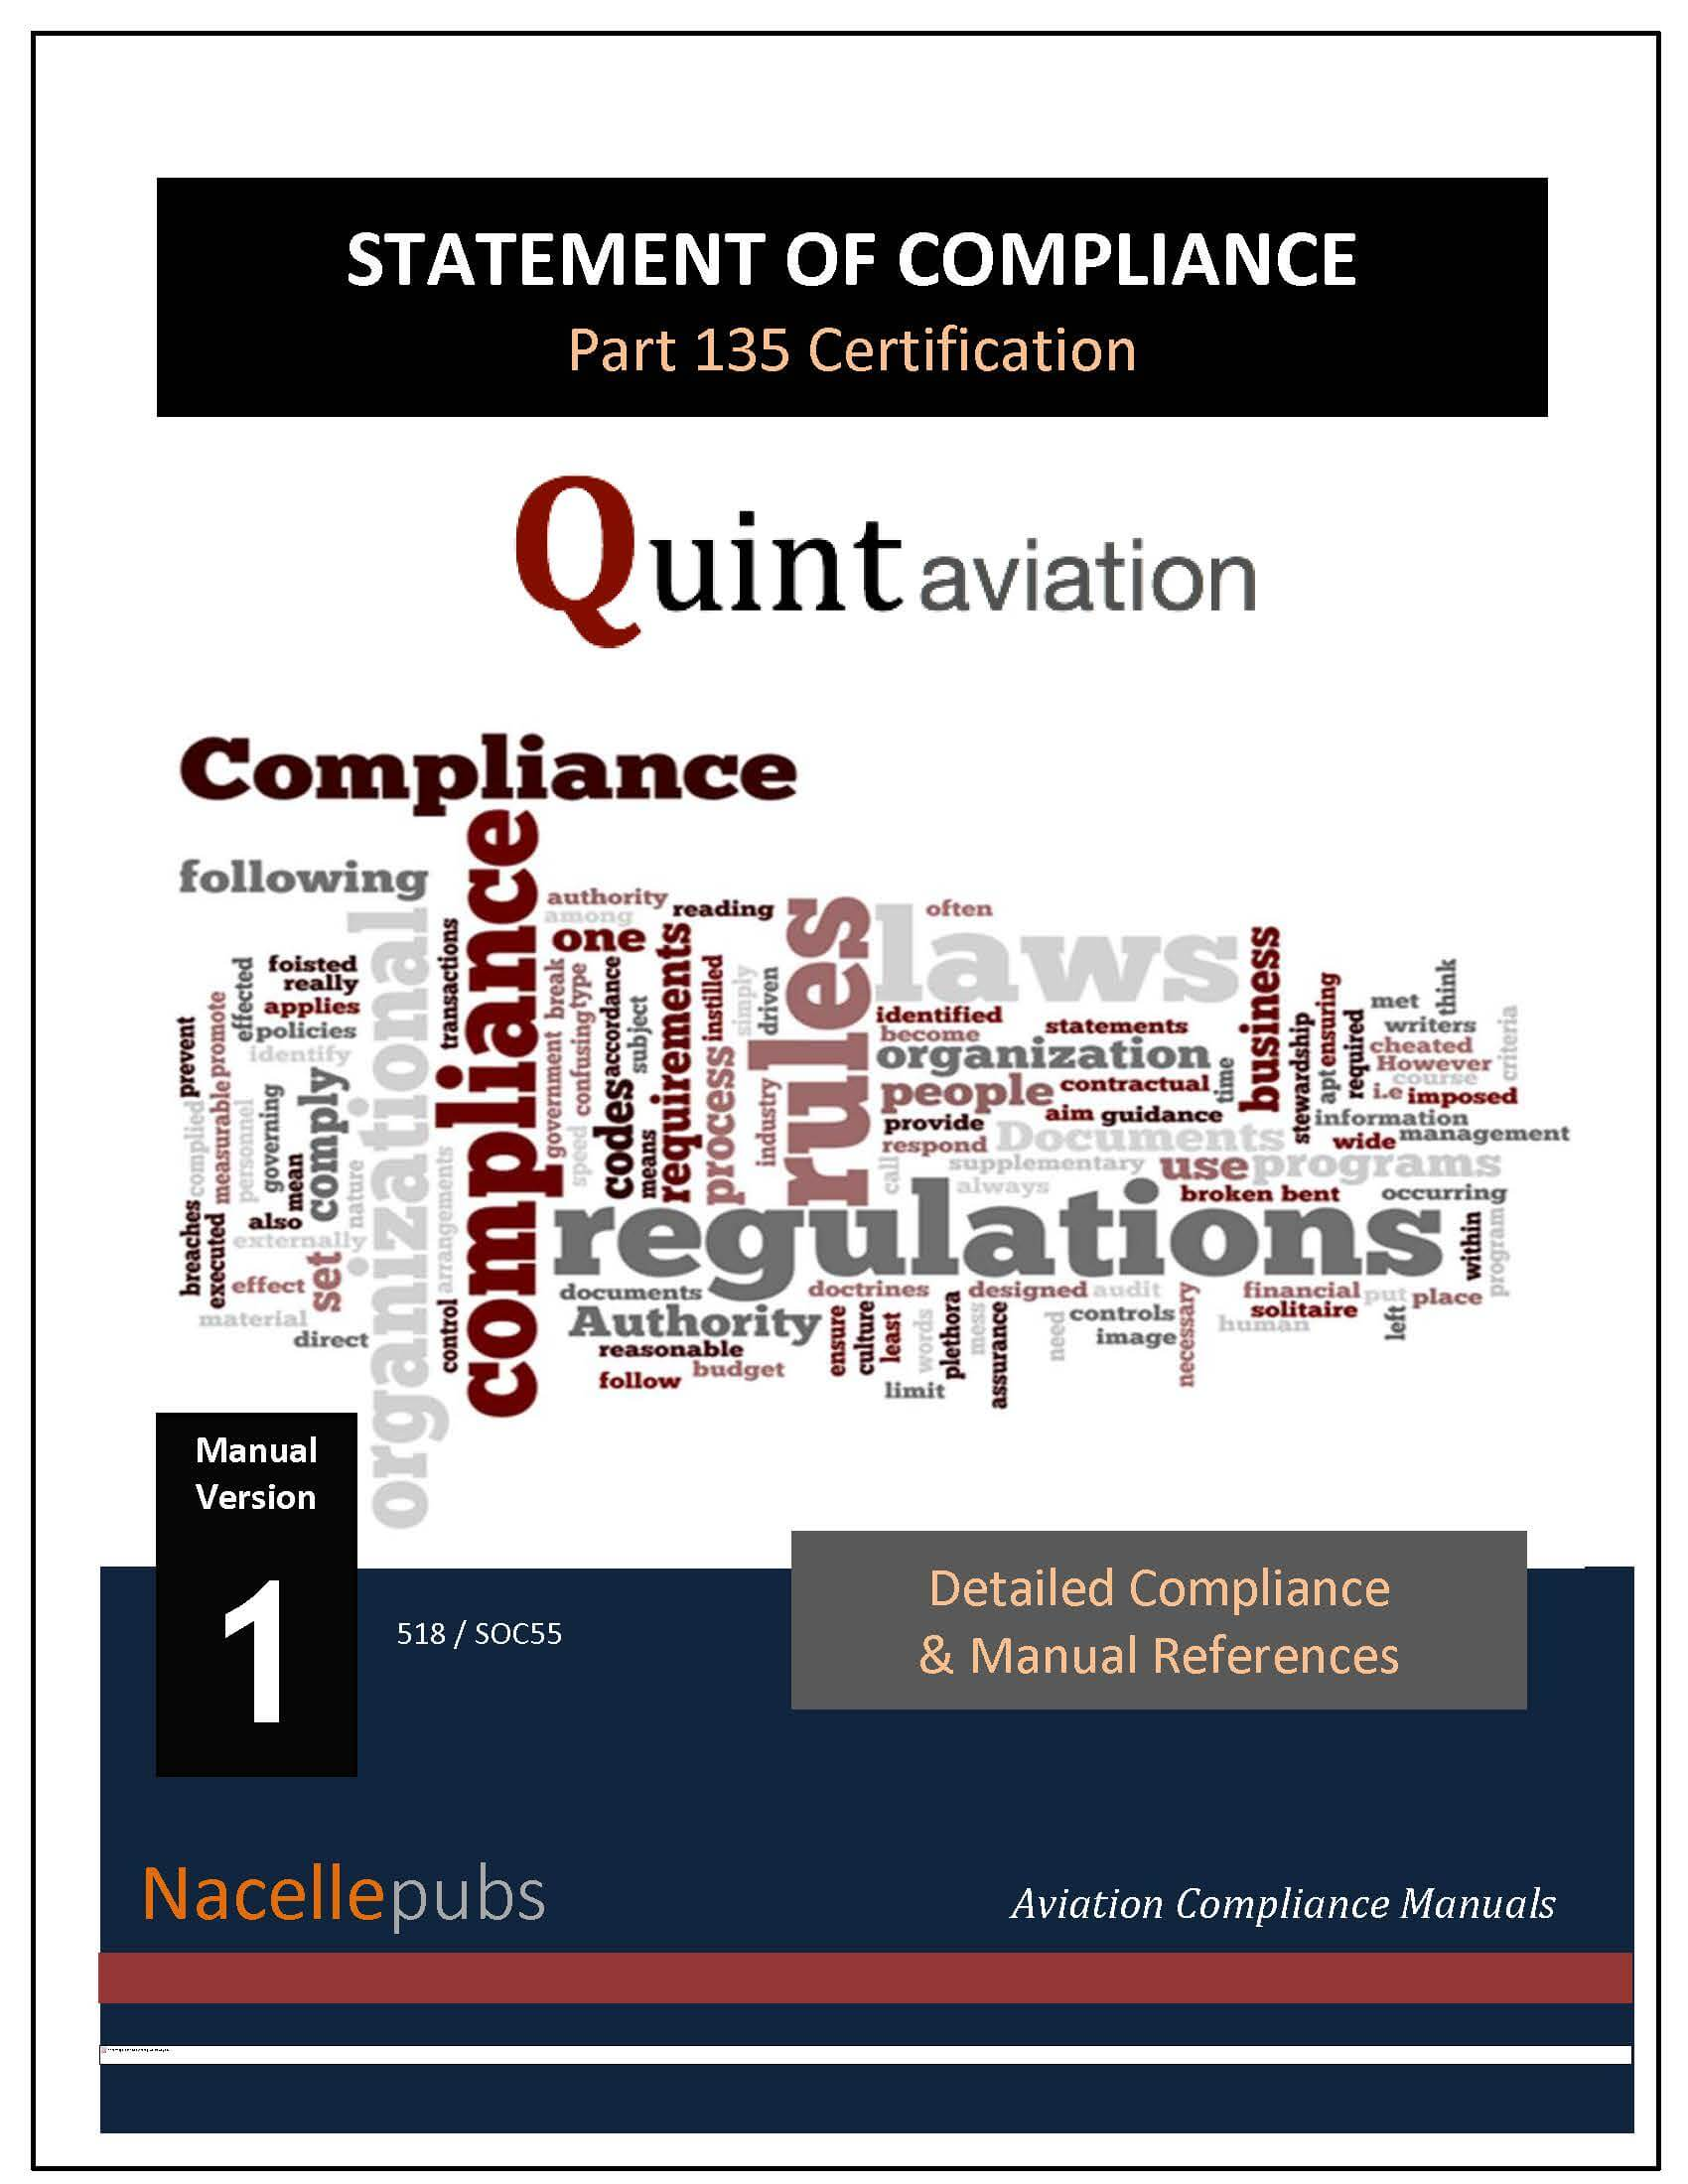 FAA Part 135 Statement of Compliance (SOC)